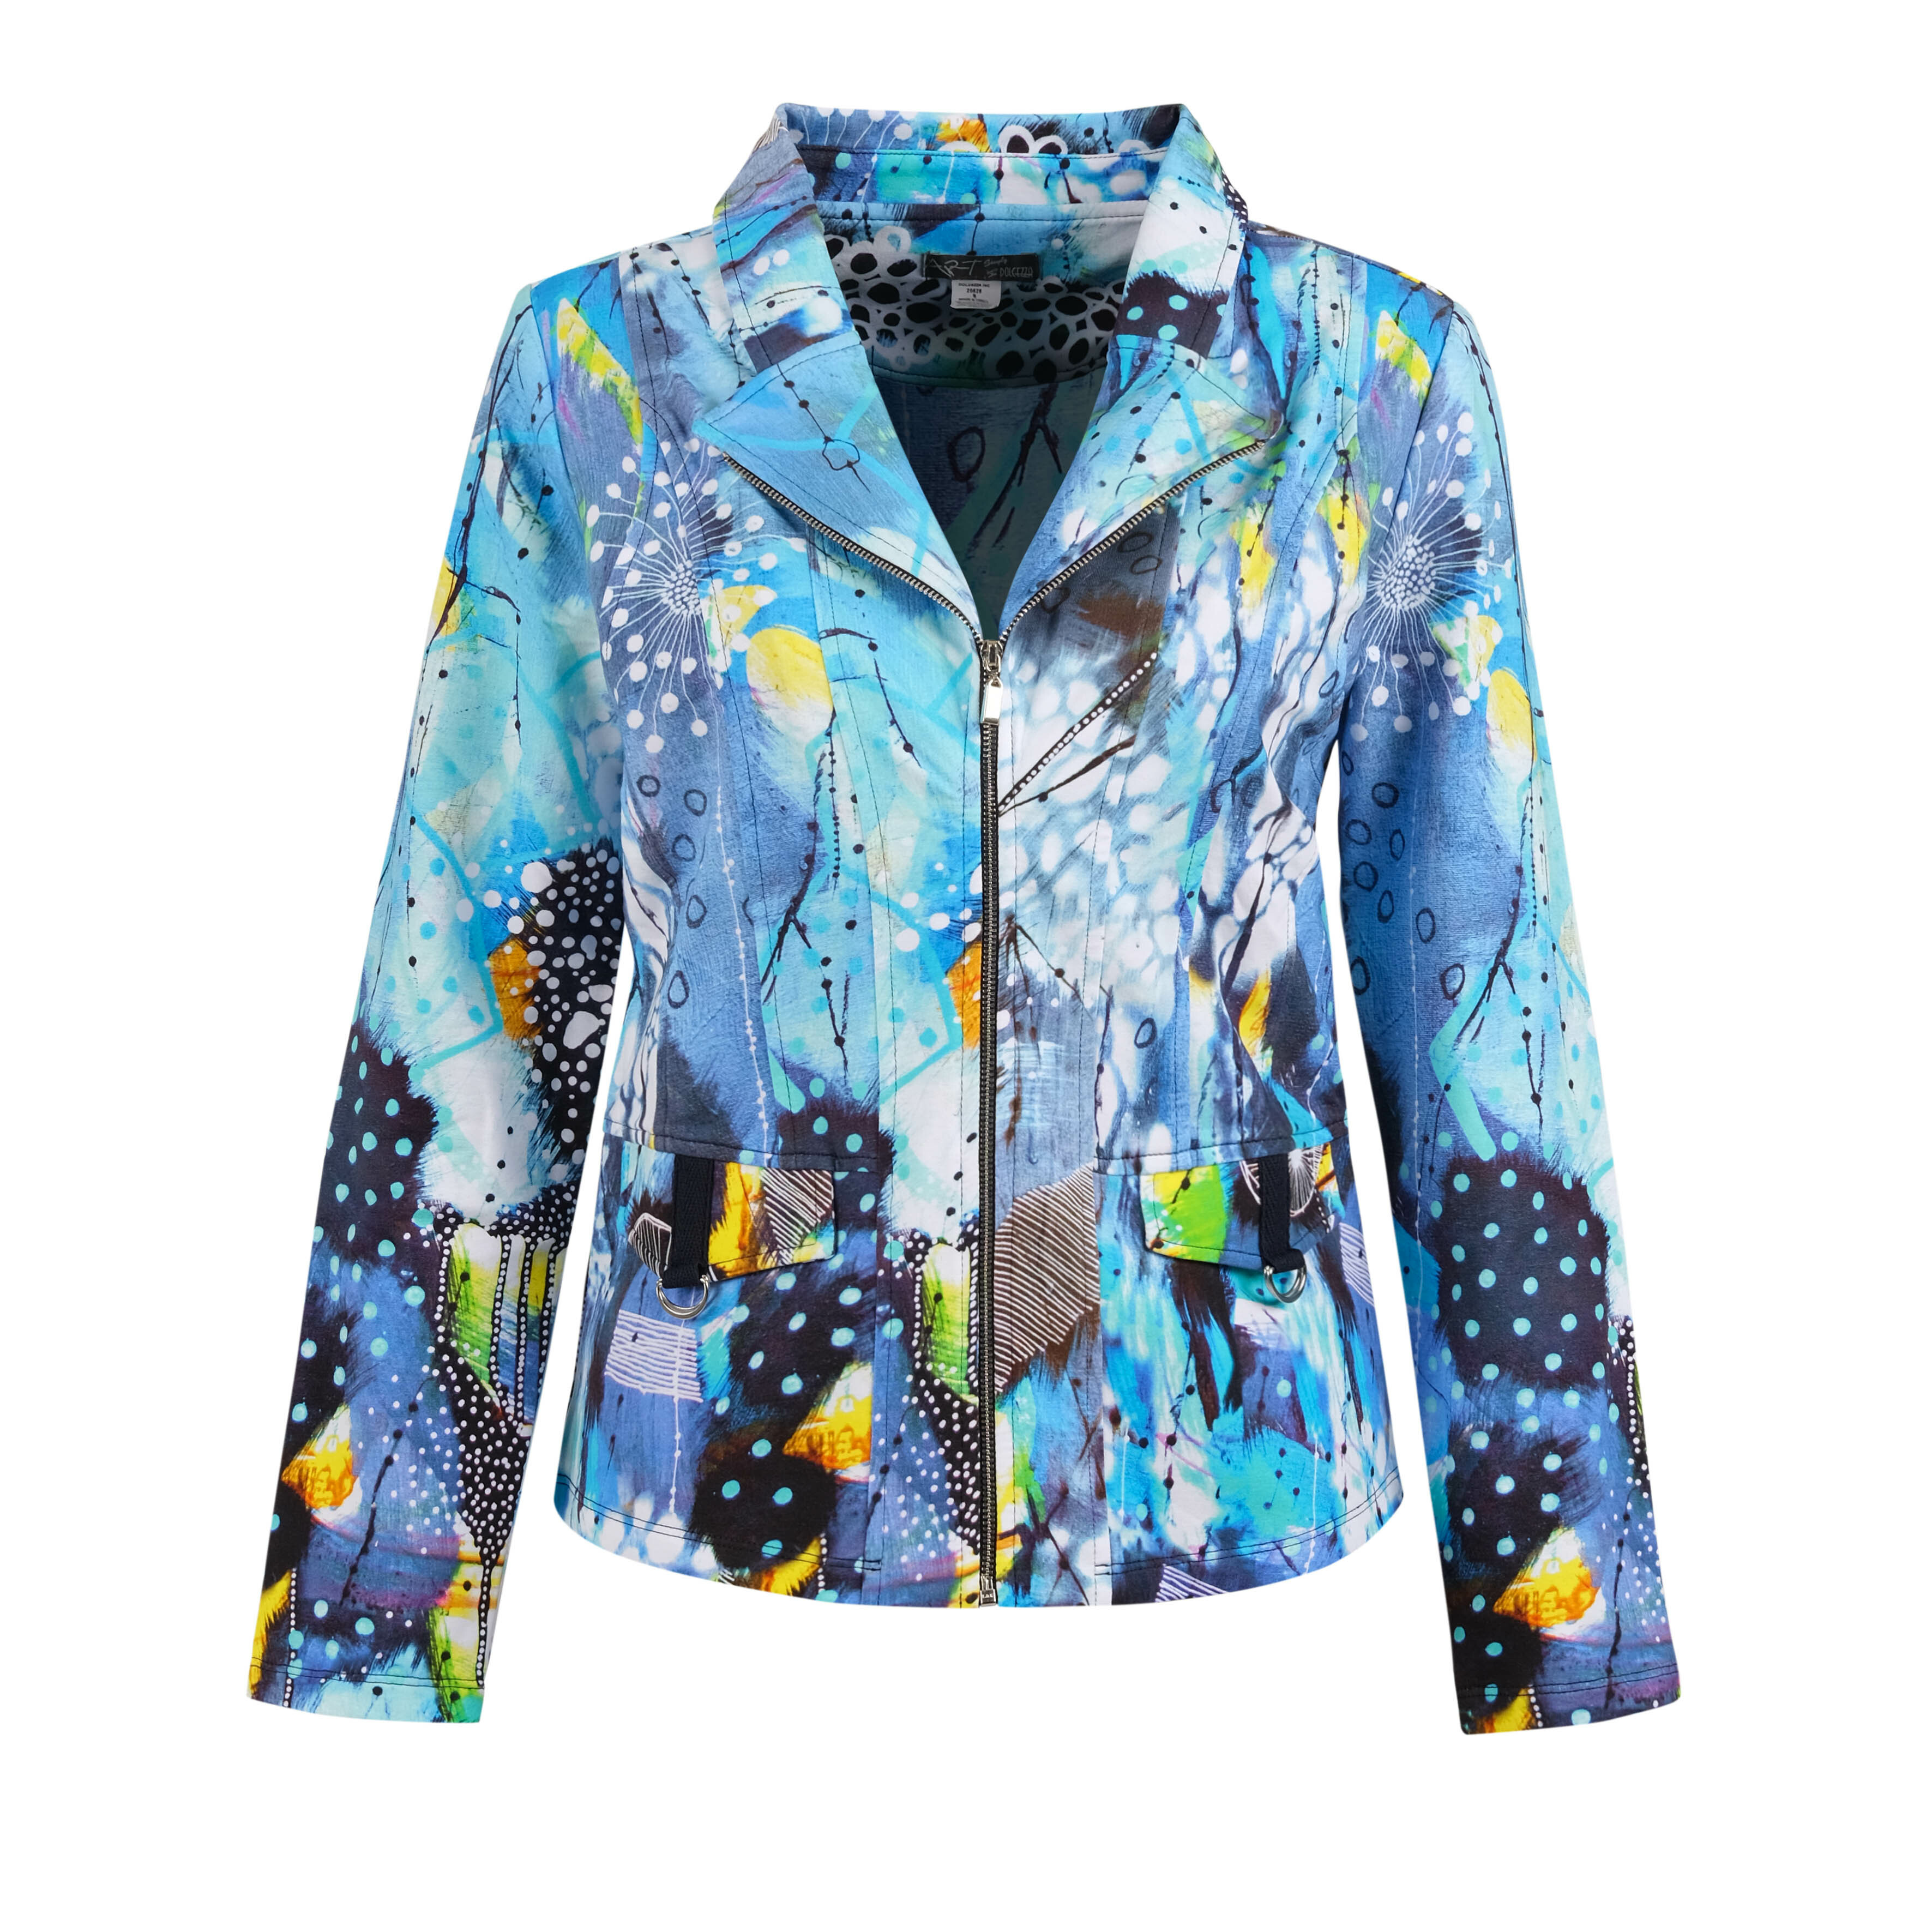 Simply Art Dolcezza: The Love of Blue Happiness Abstract Art Zip Jacket (1 Left!)